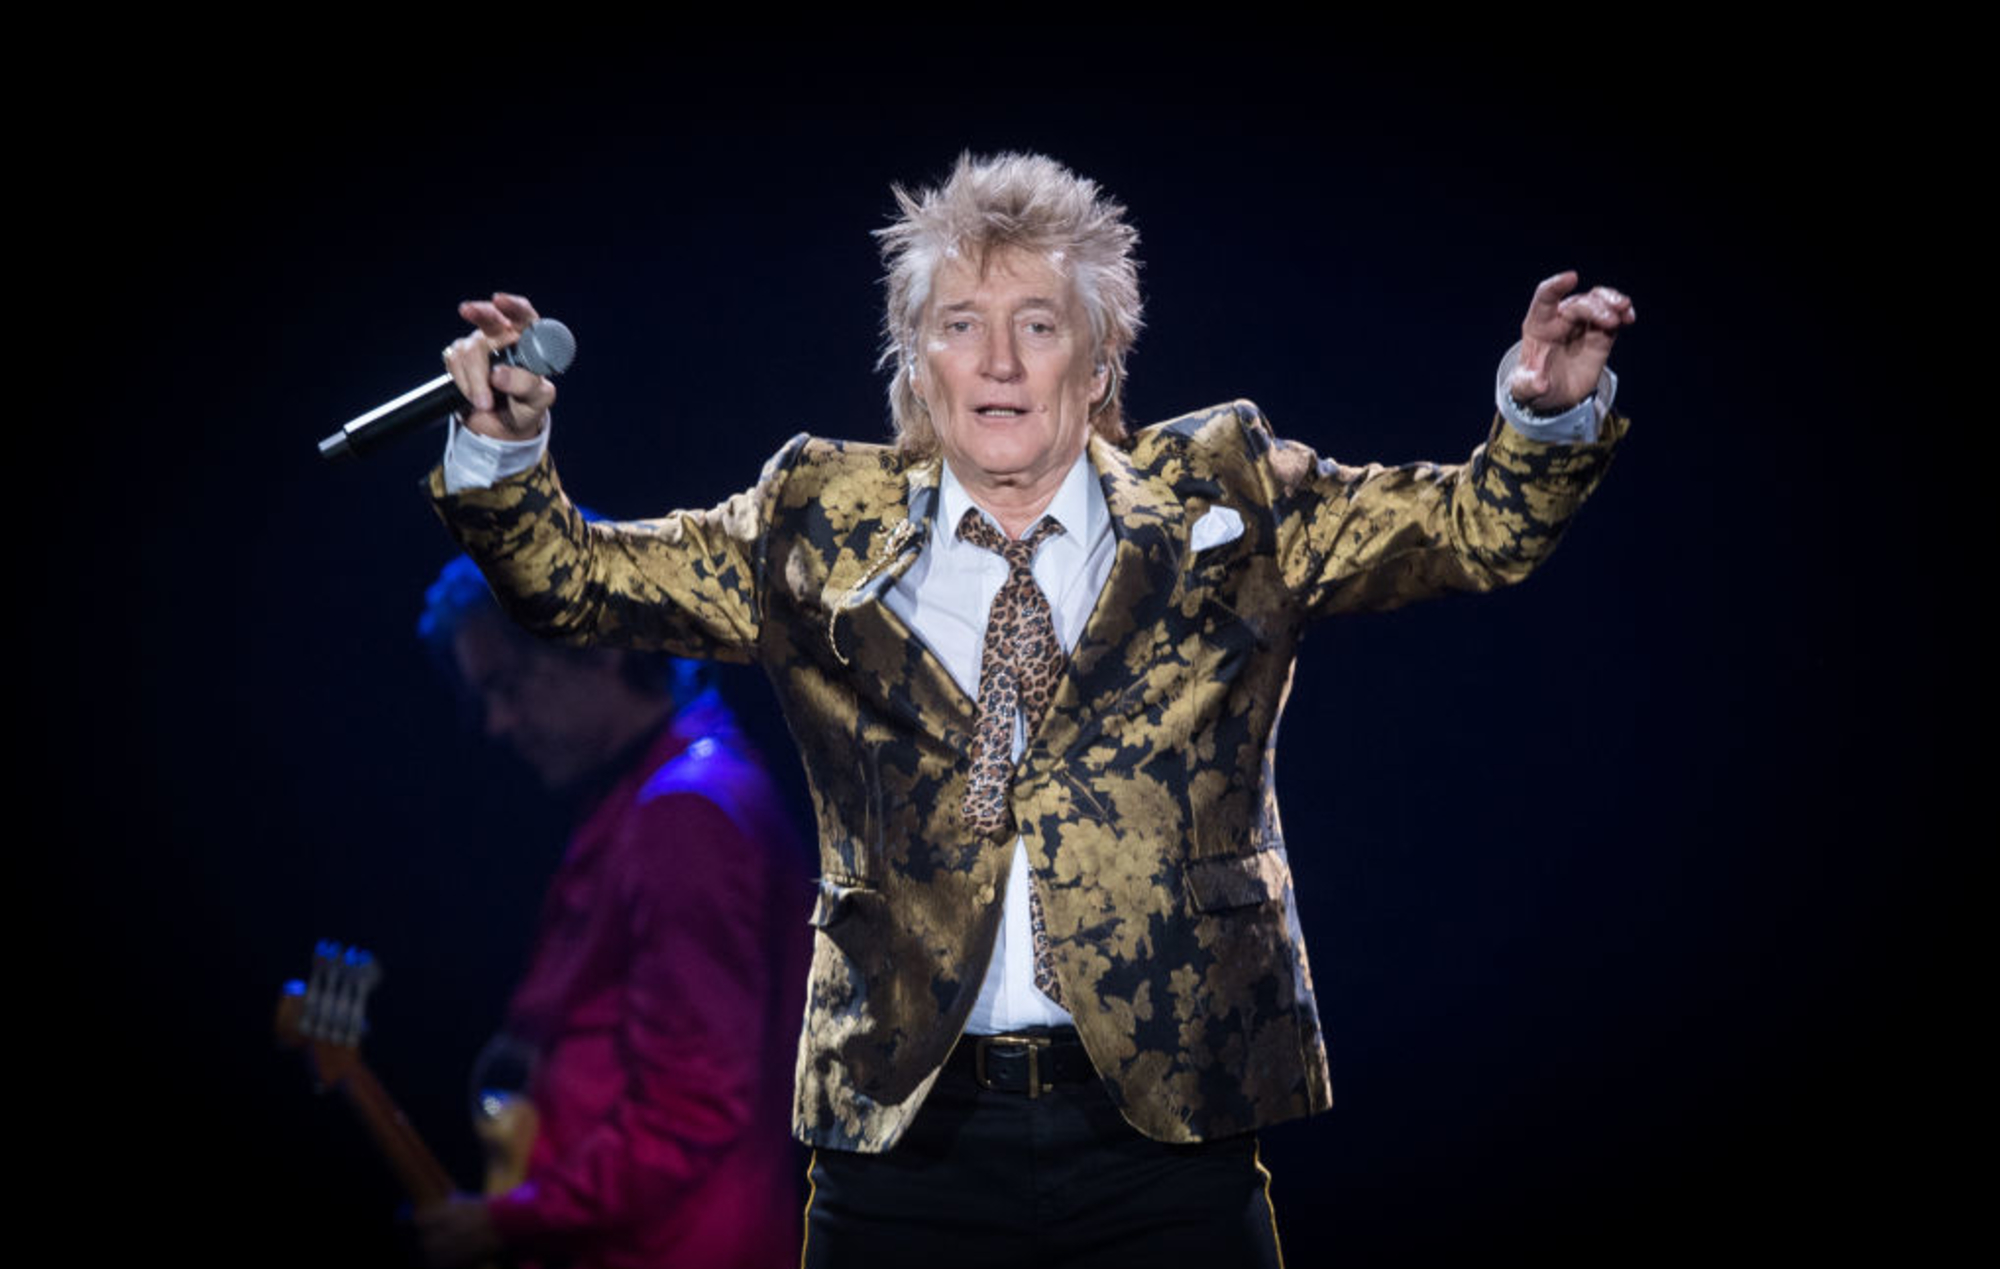 Rod Stewart appears to perform Nazi salute and assault security guard in new video